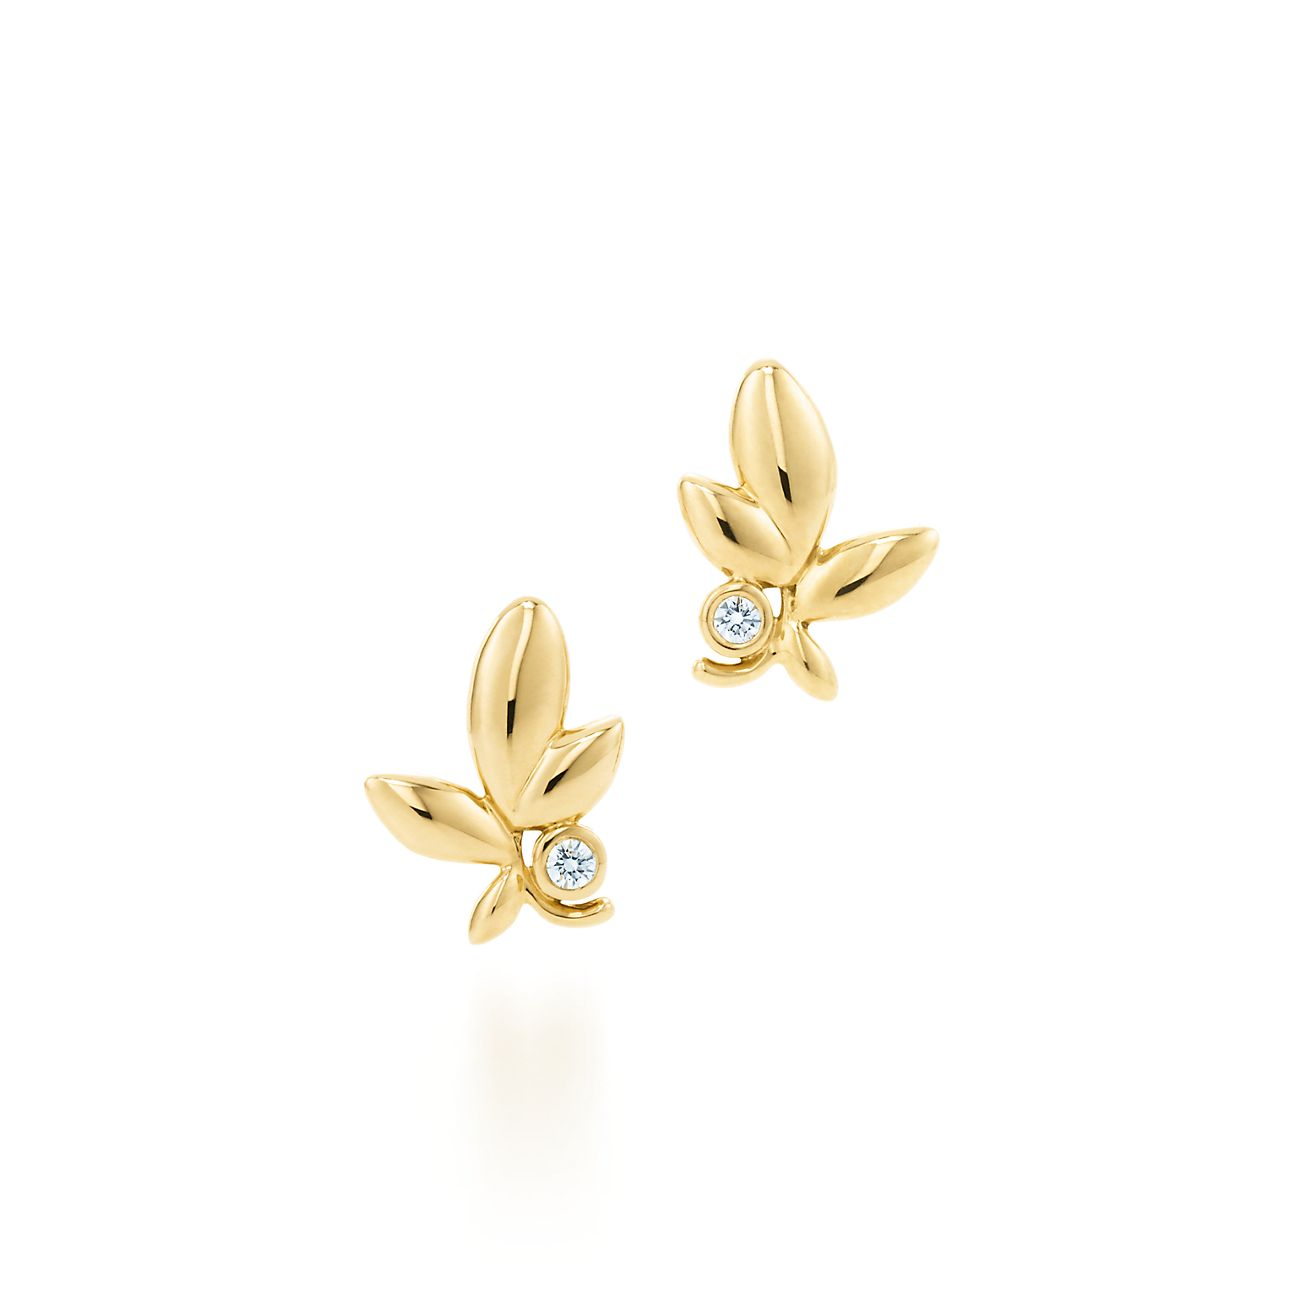 Paloma Picasso® Olive Leaf earrings in 18k gold with diamonds ...